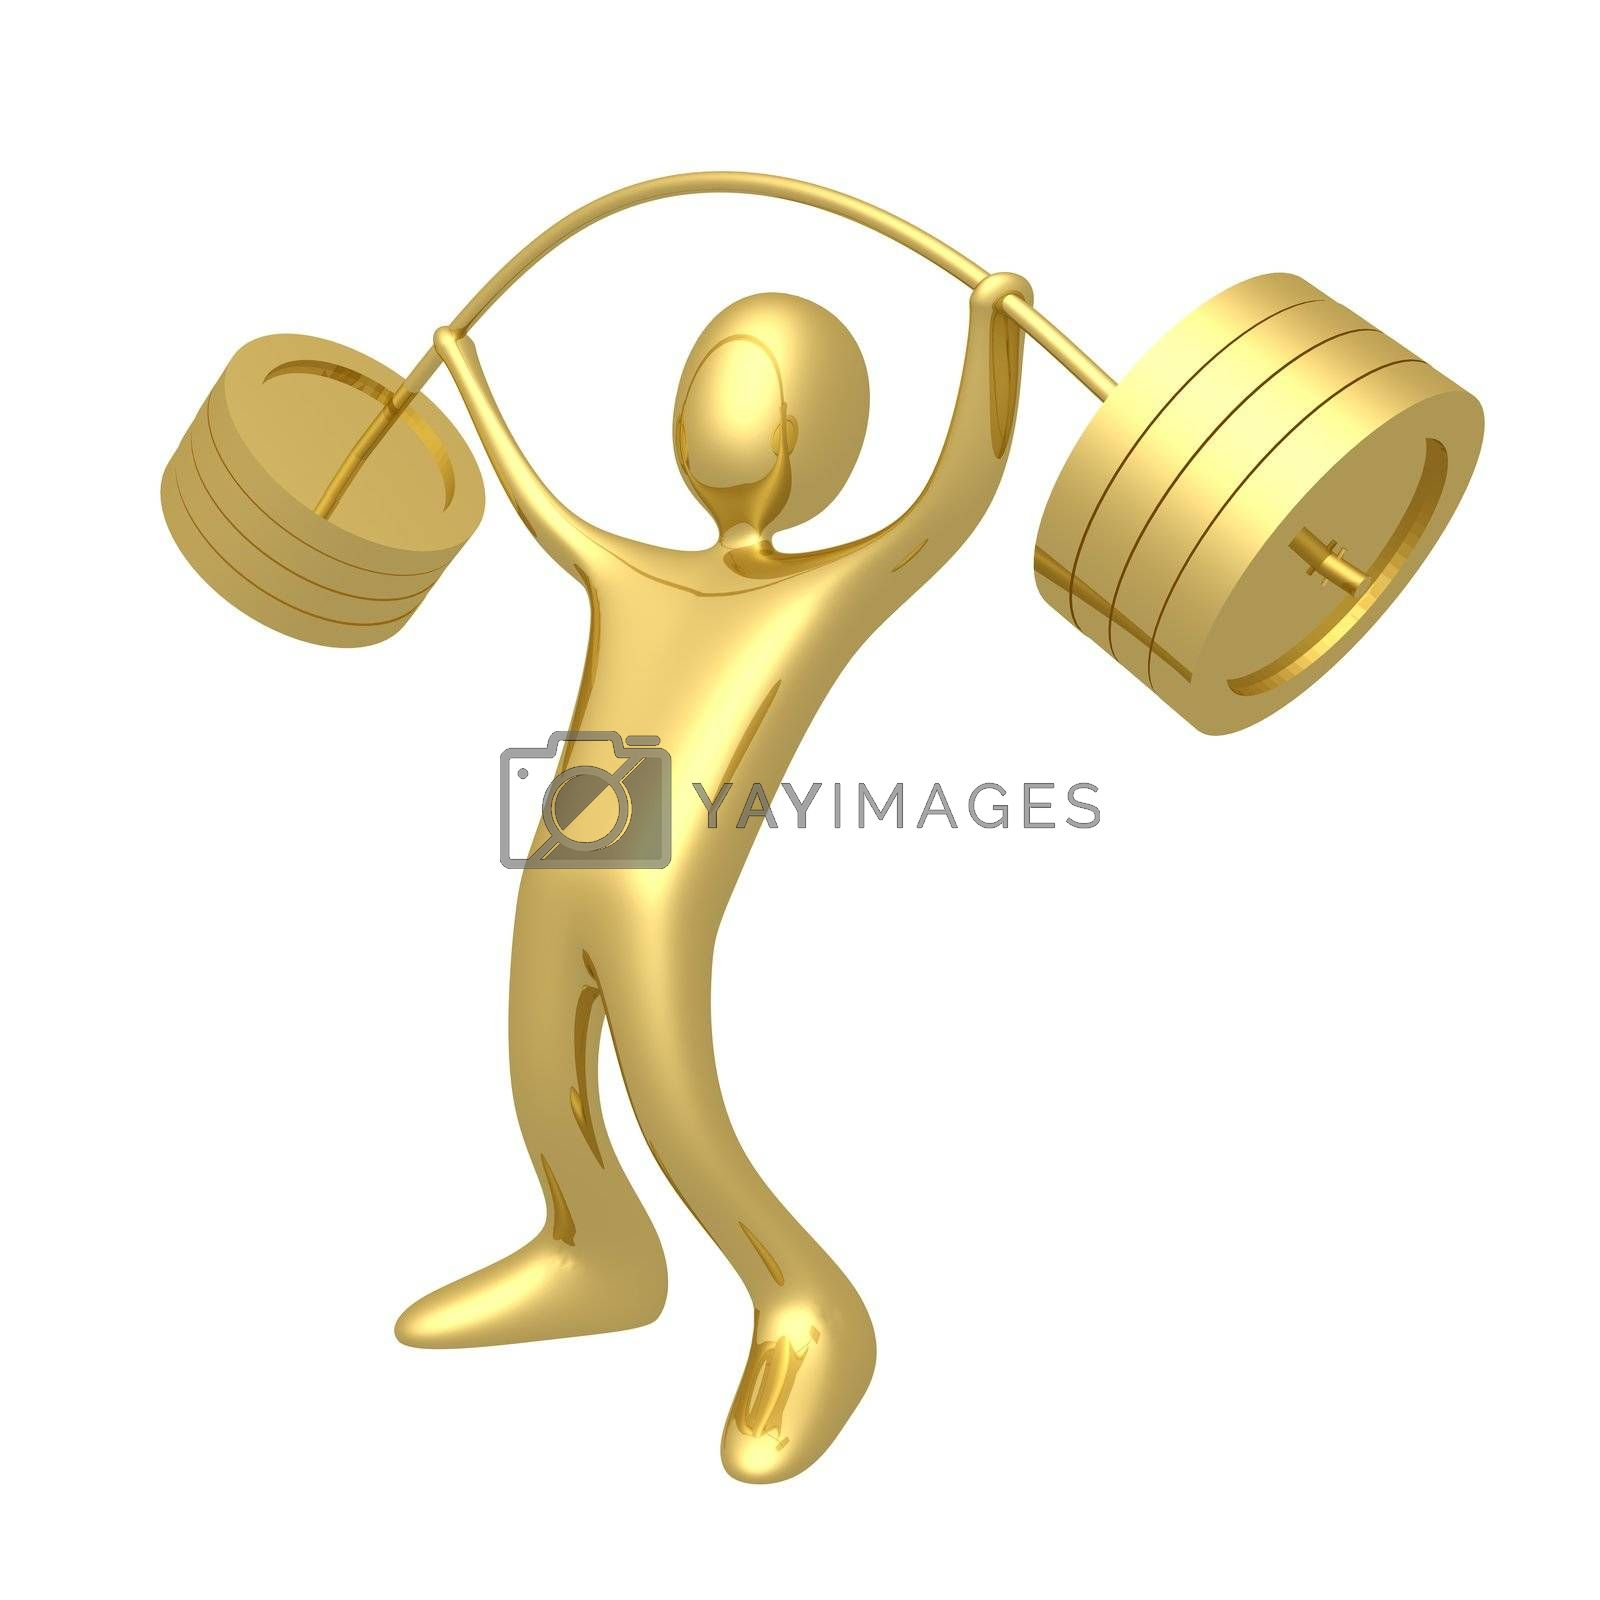 Royalty free image of Weightlifter by 3pod